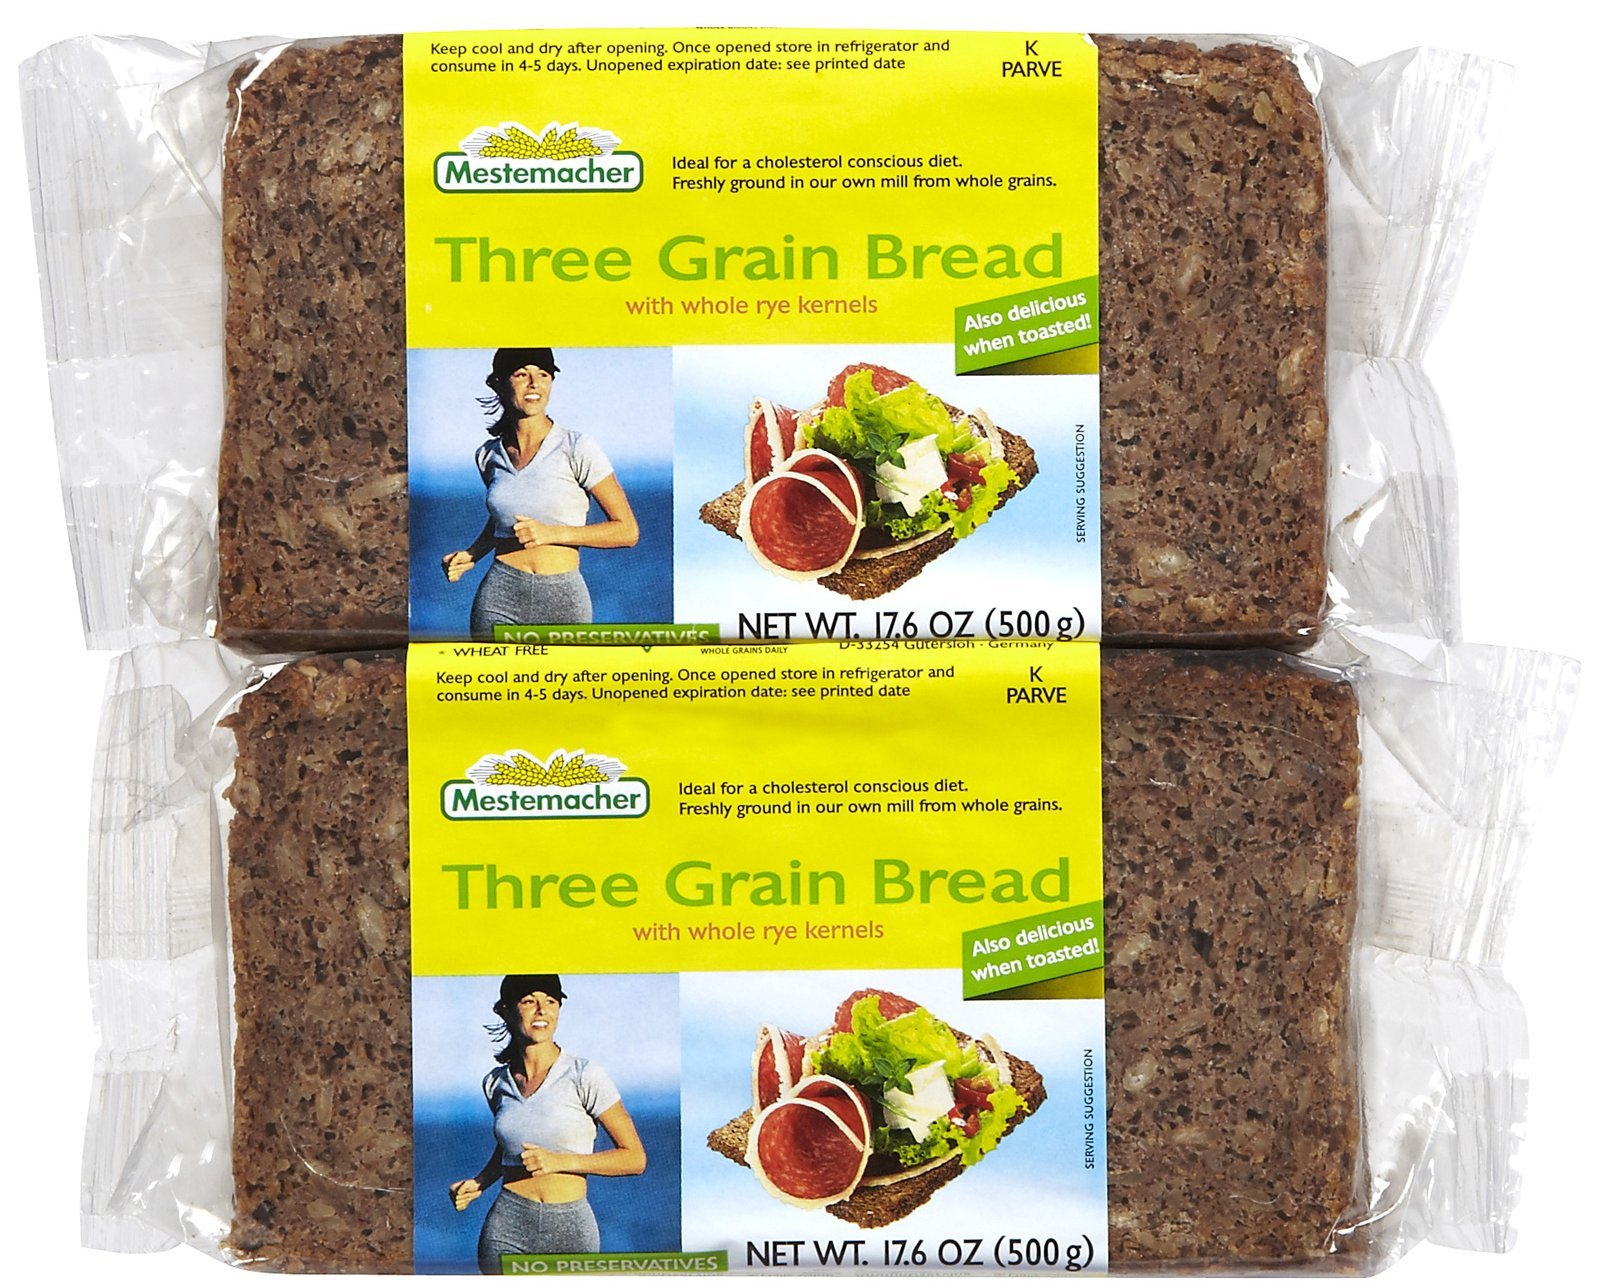 Mestemacher Bread Rte 3Grain, 17.6 oz